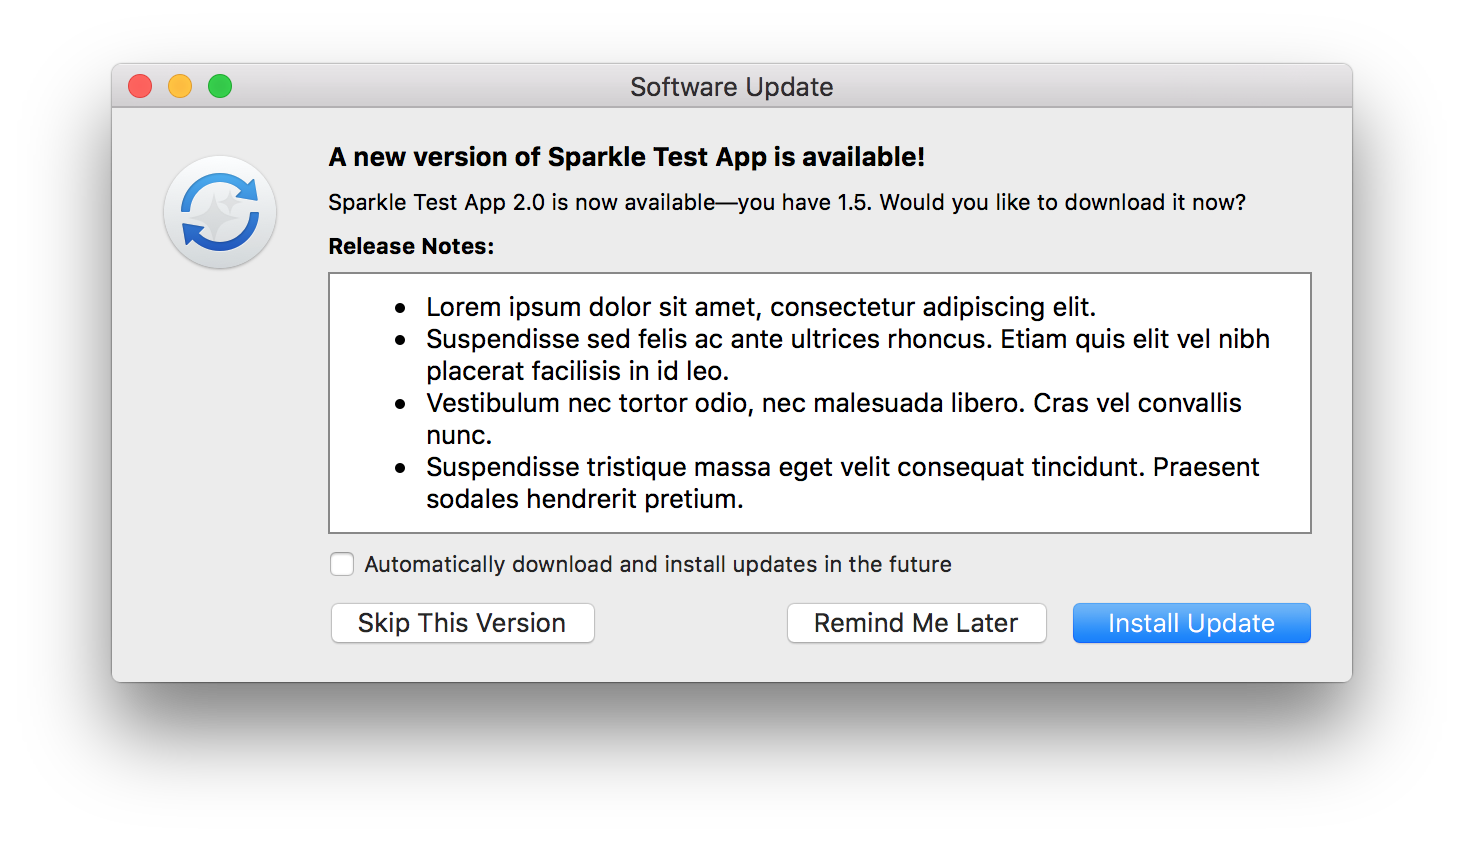 Sparkle shows familiar update window with release notes